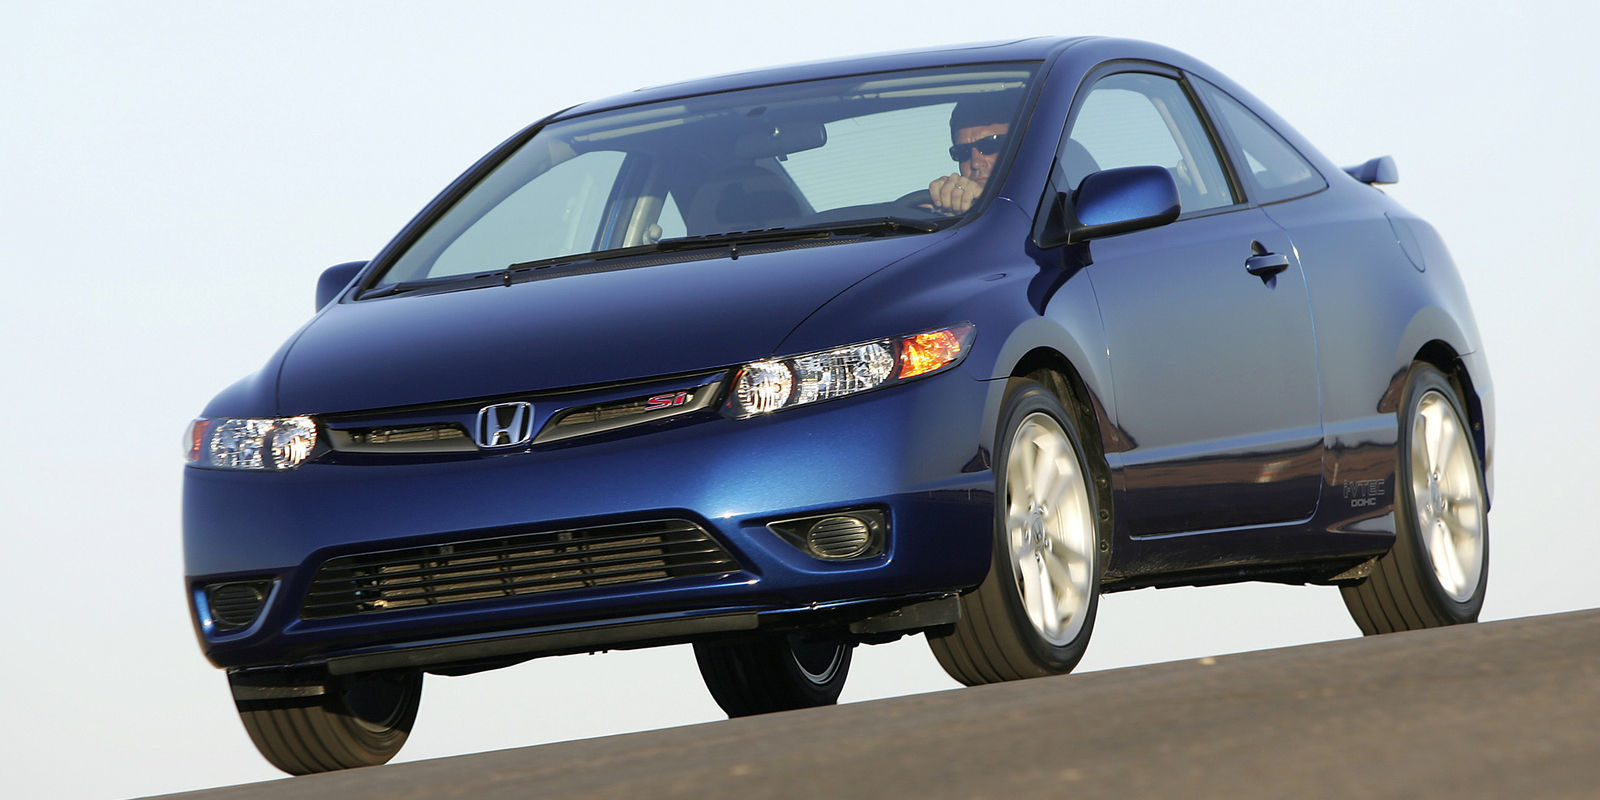 13 Good First Cars That Aren't Oppressively Boring